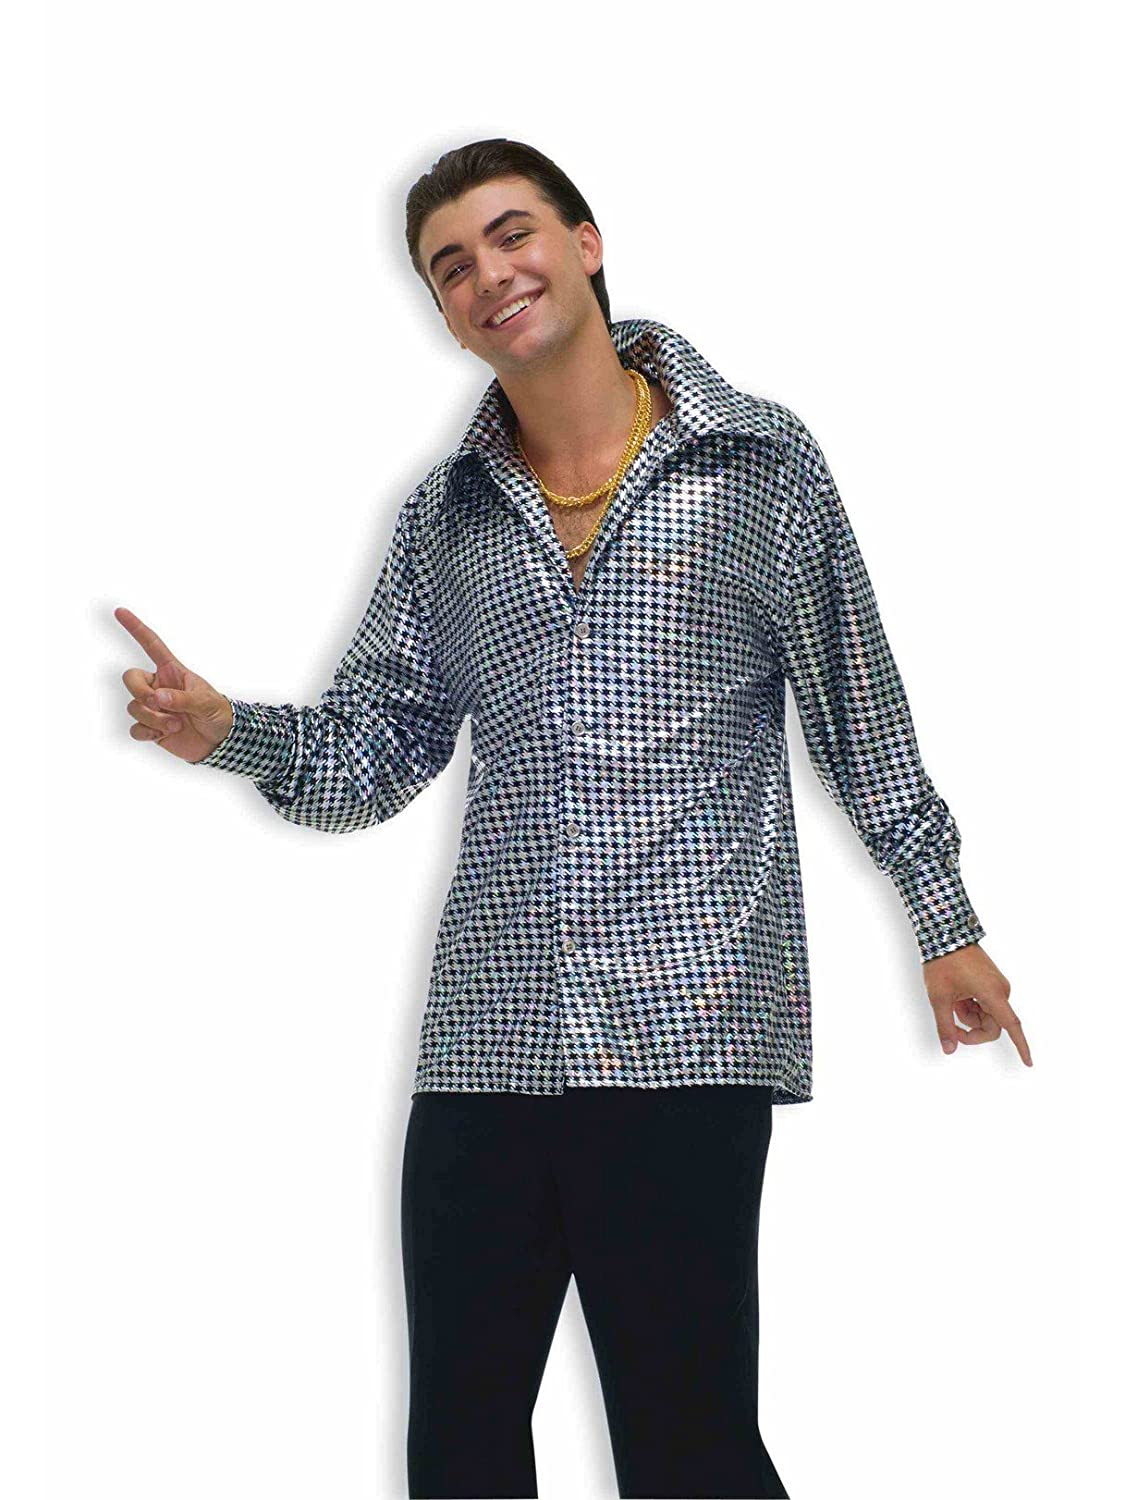 44851f465bf68e Disco dude costume top. Wide-collared shirt with shining checked print  design. Plus size for men best fits jacket sizes 44-48. Search forum 70 s  disco fever ...